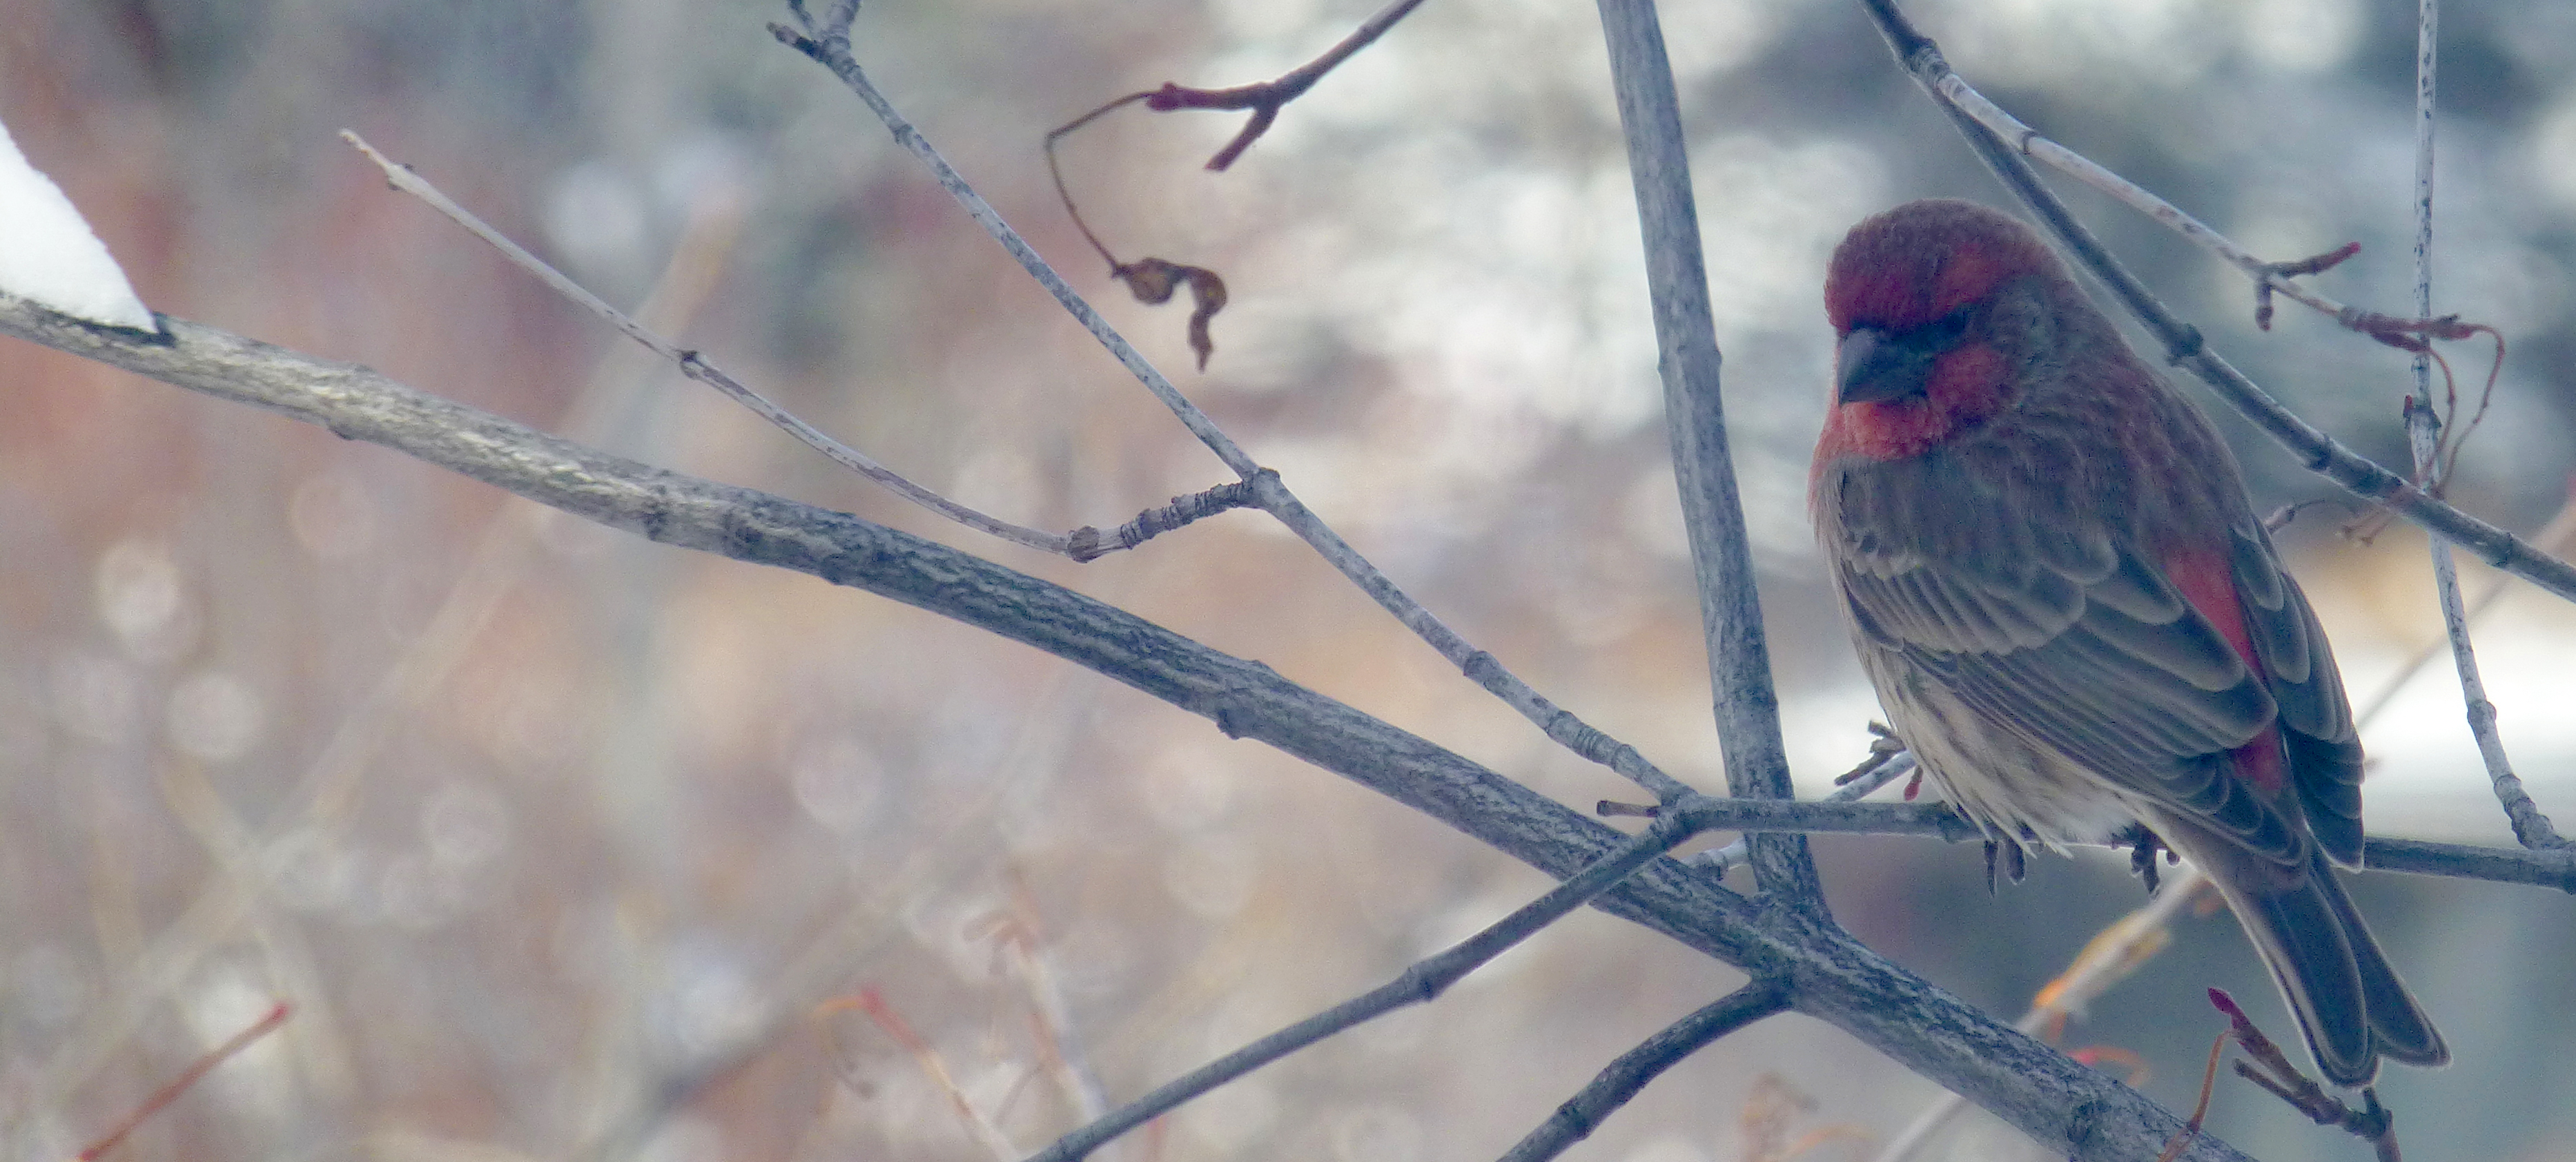 birding with ACES in Aspen in the spring